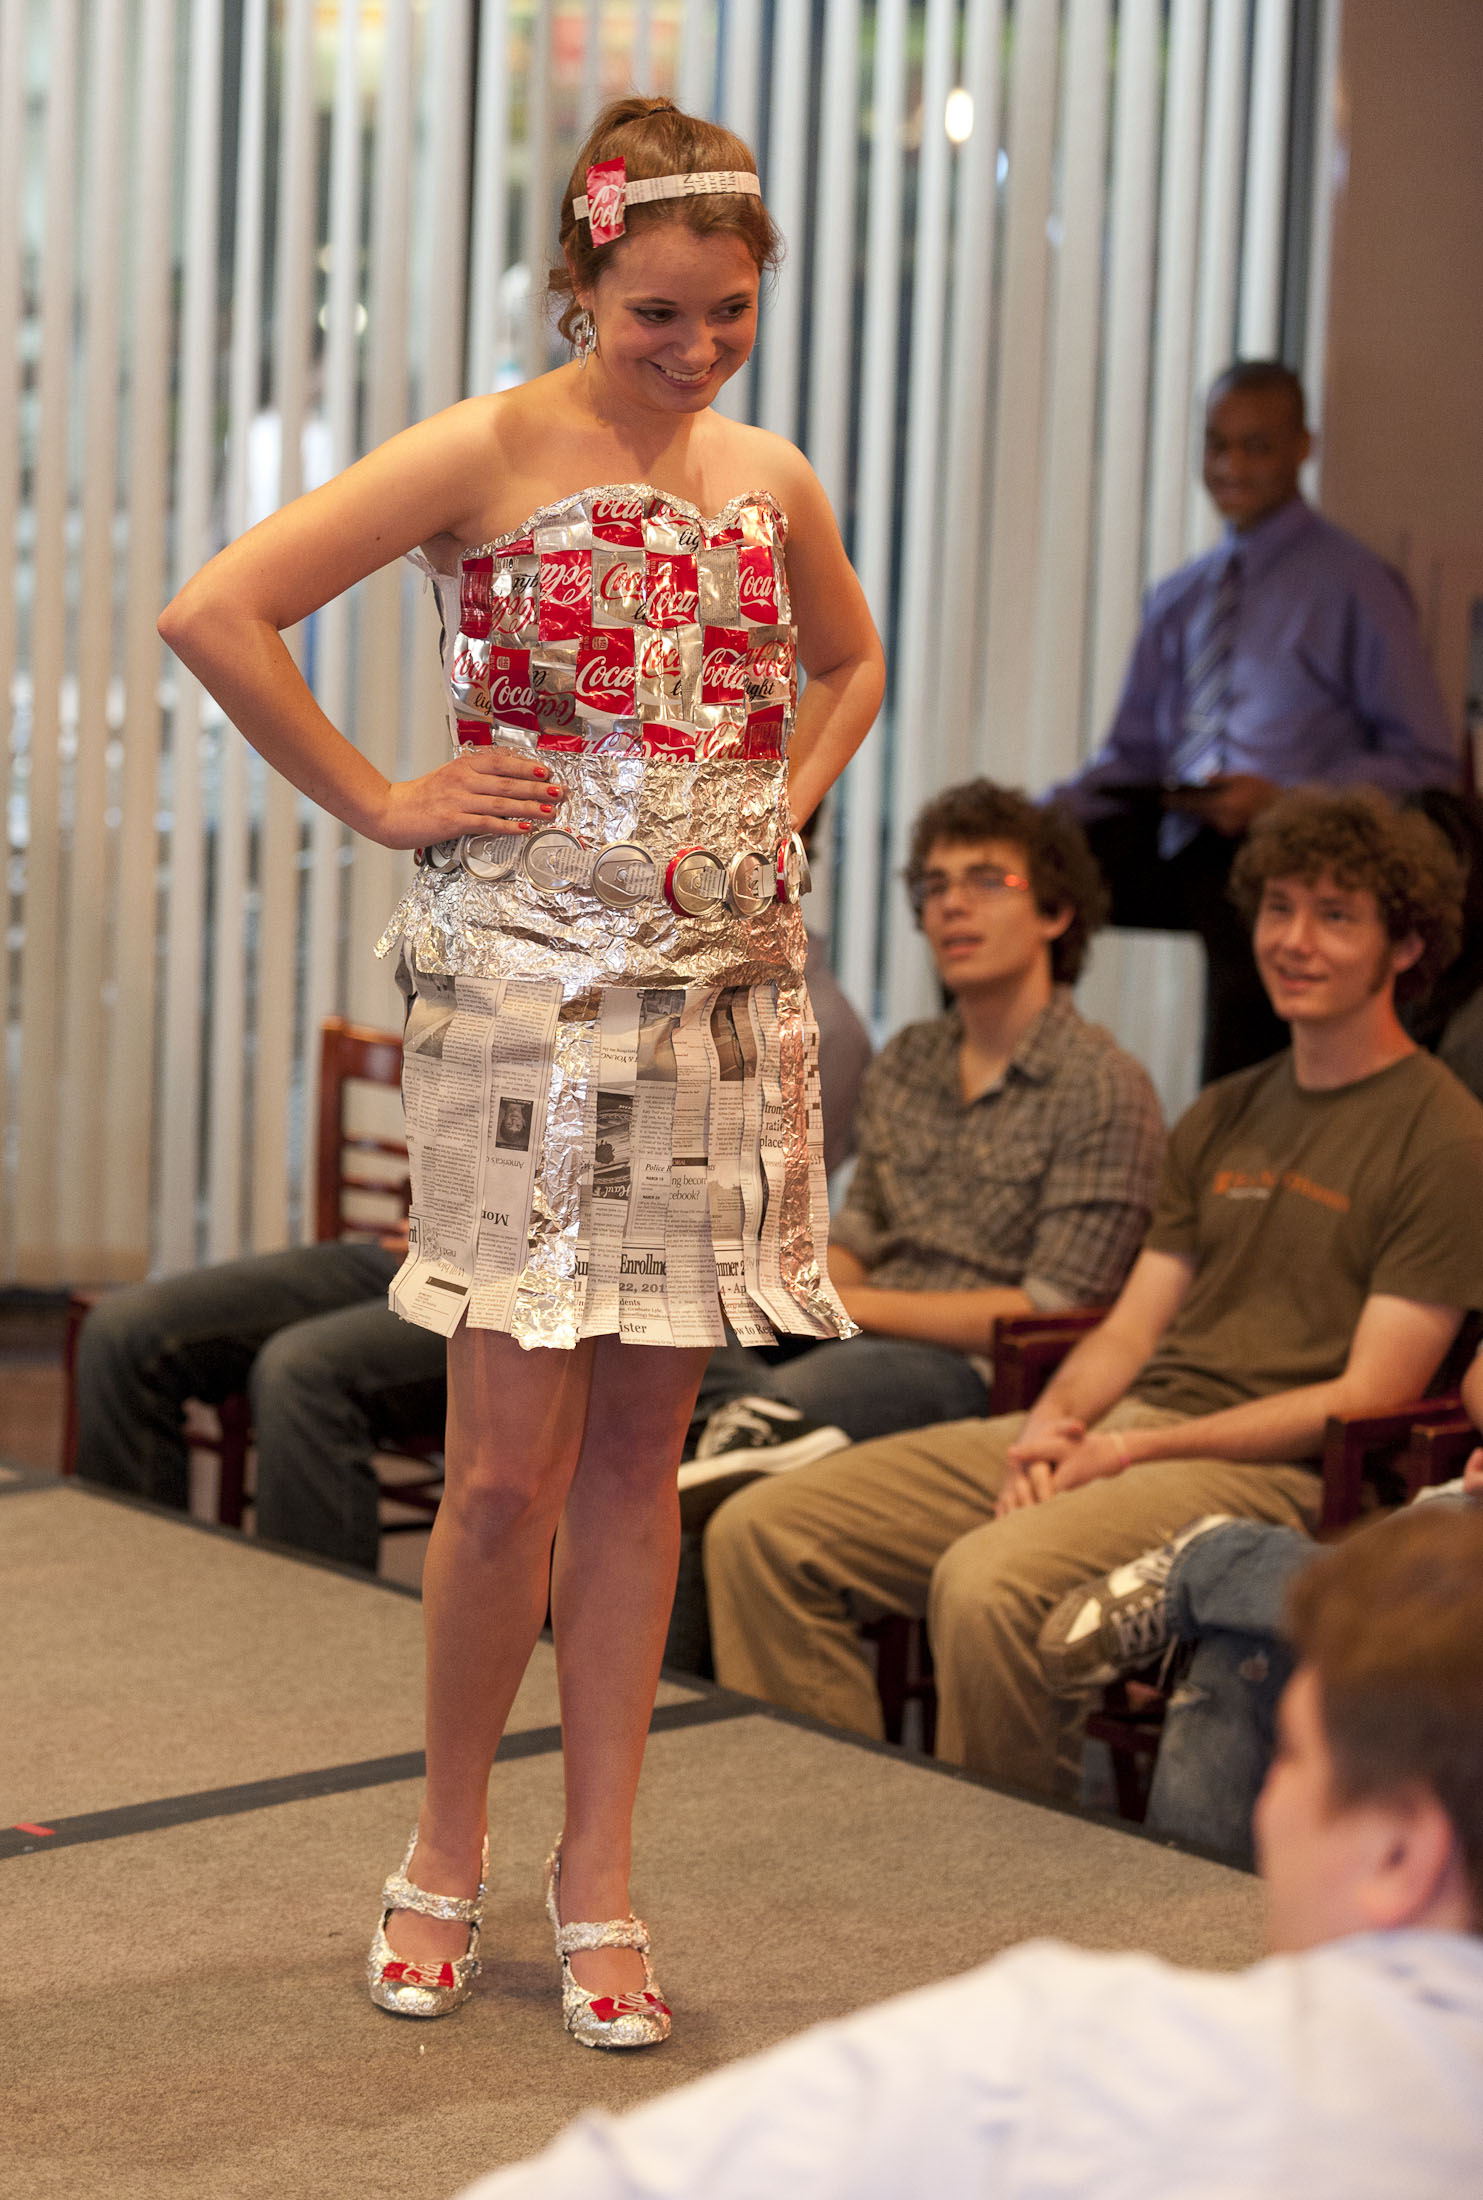 First-year advertising student Mackenzie Keck exhibits a can-do spirit in this strapless dress featuring aluminum cans.